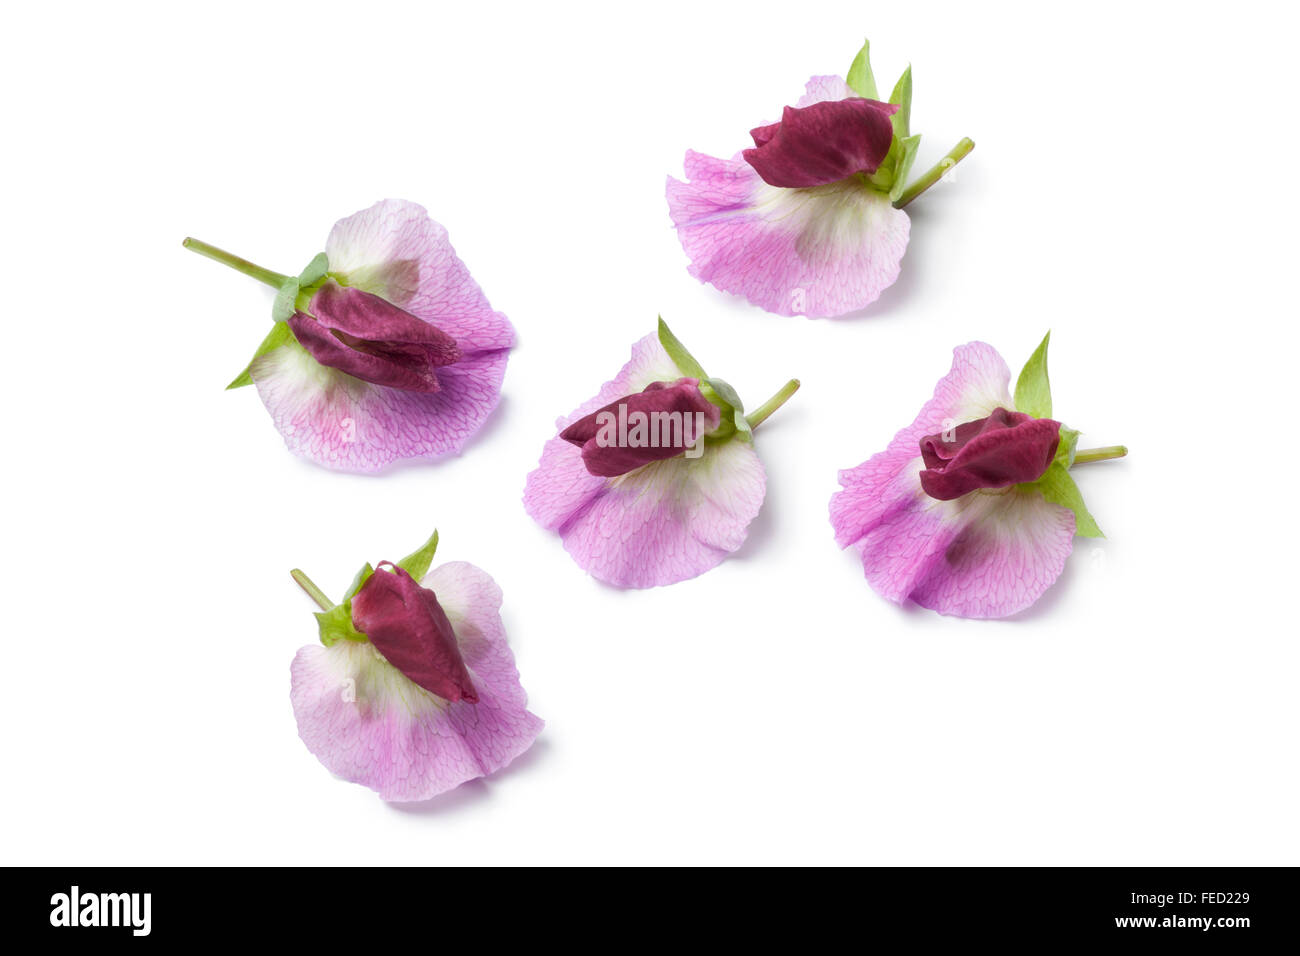 Fresh sweet pea flowers on white background stock photo royalty fresh sweet pea flowers on white background dhlflorist Image collections